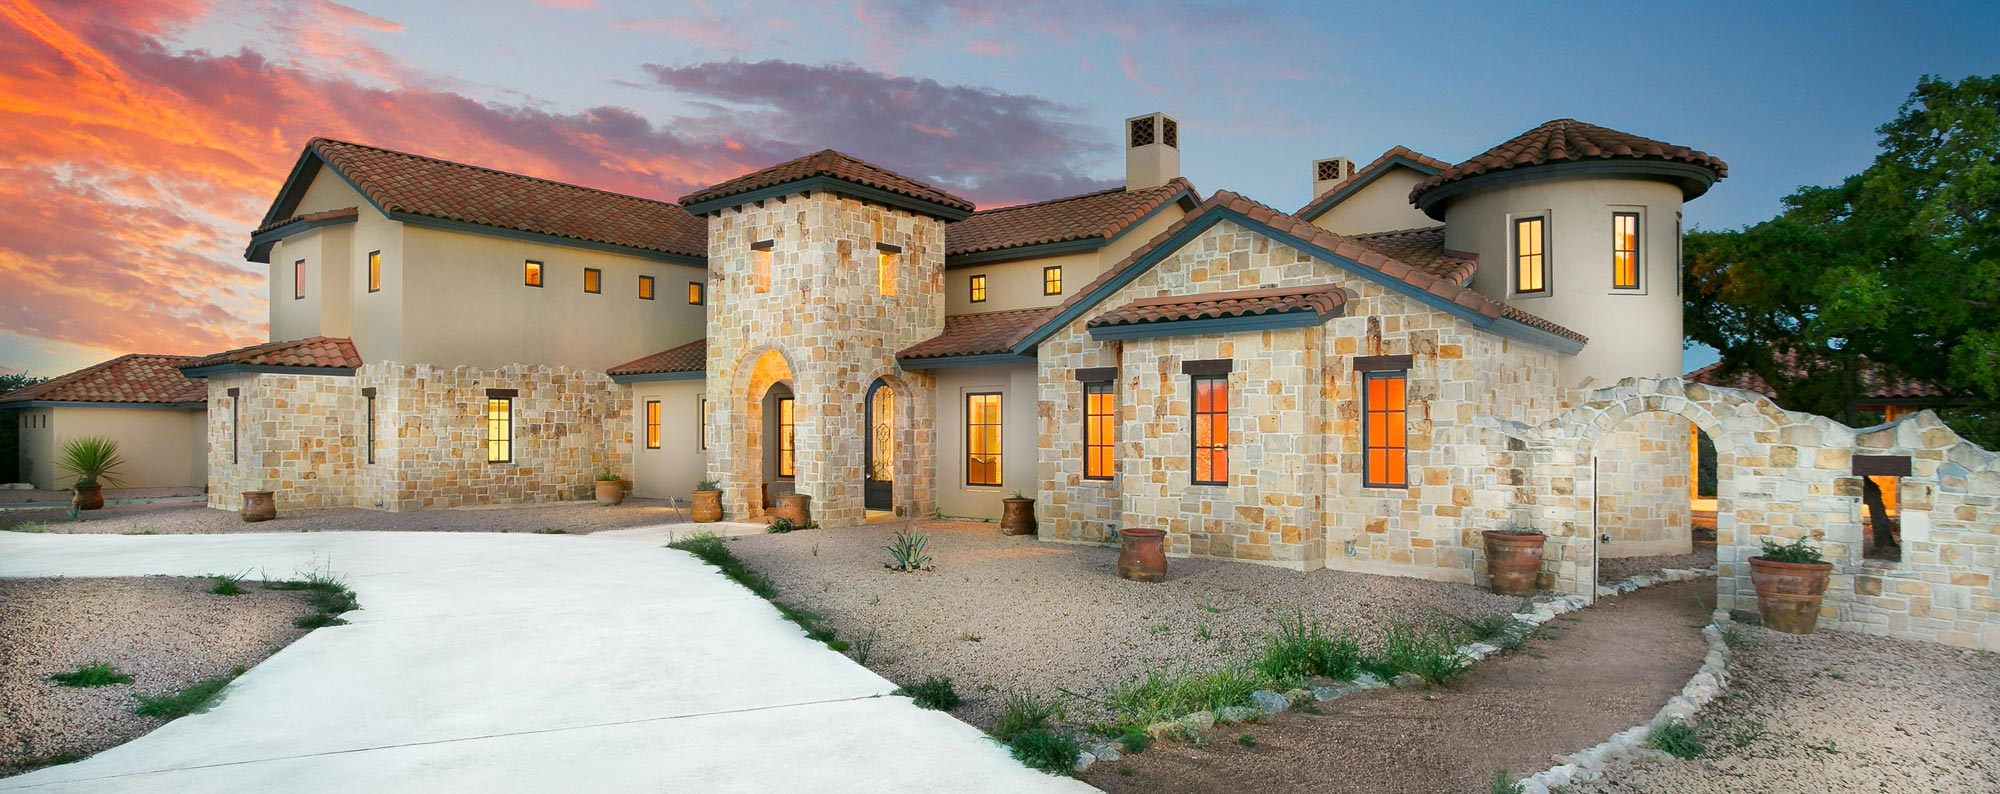 Helotes Ridge Luxury Estate